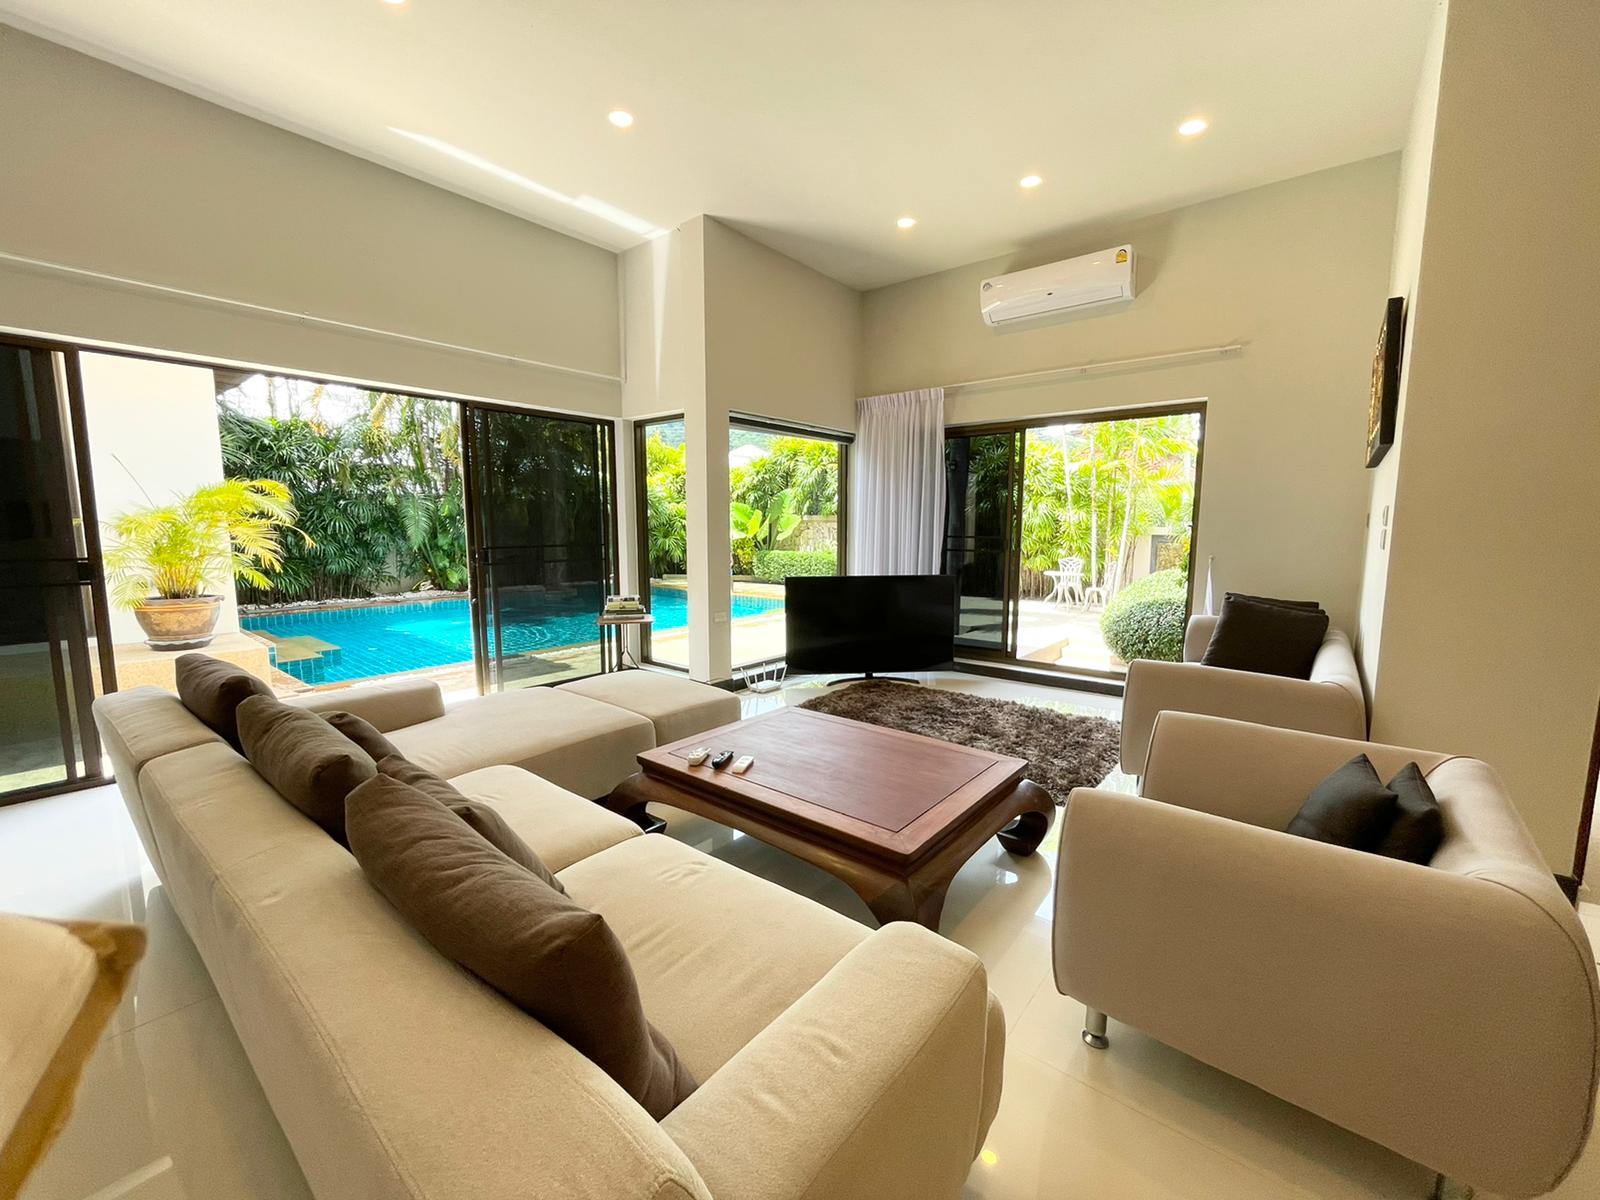 3 Bedrooms Pool Villa for Rent (ID KL-042)